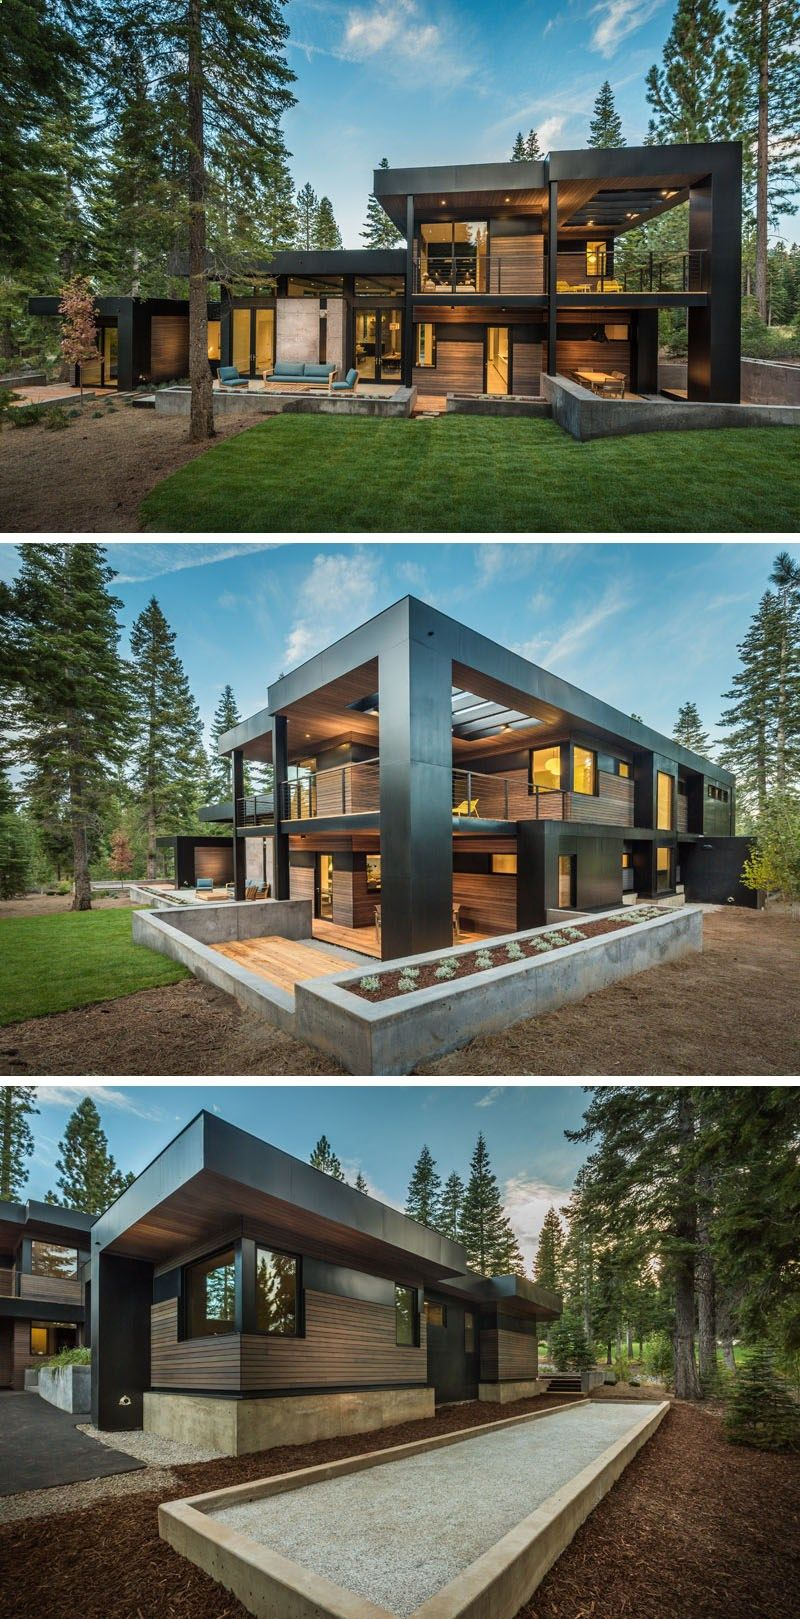 The home designed as a secluded and